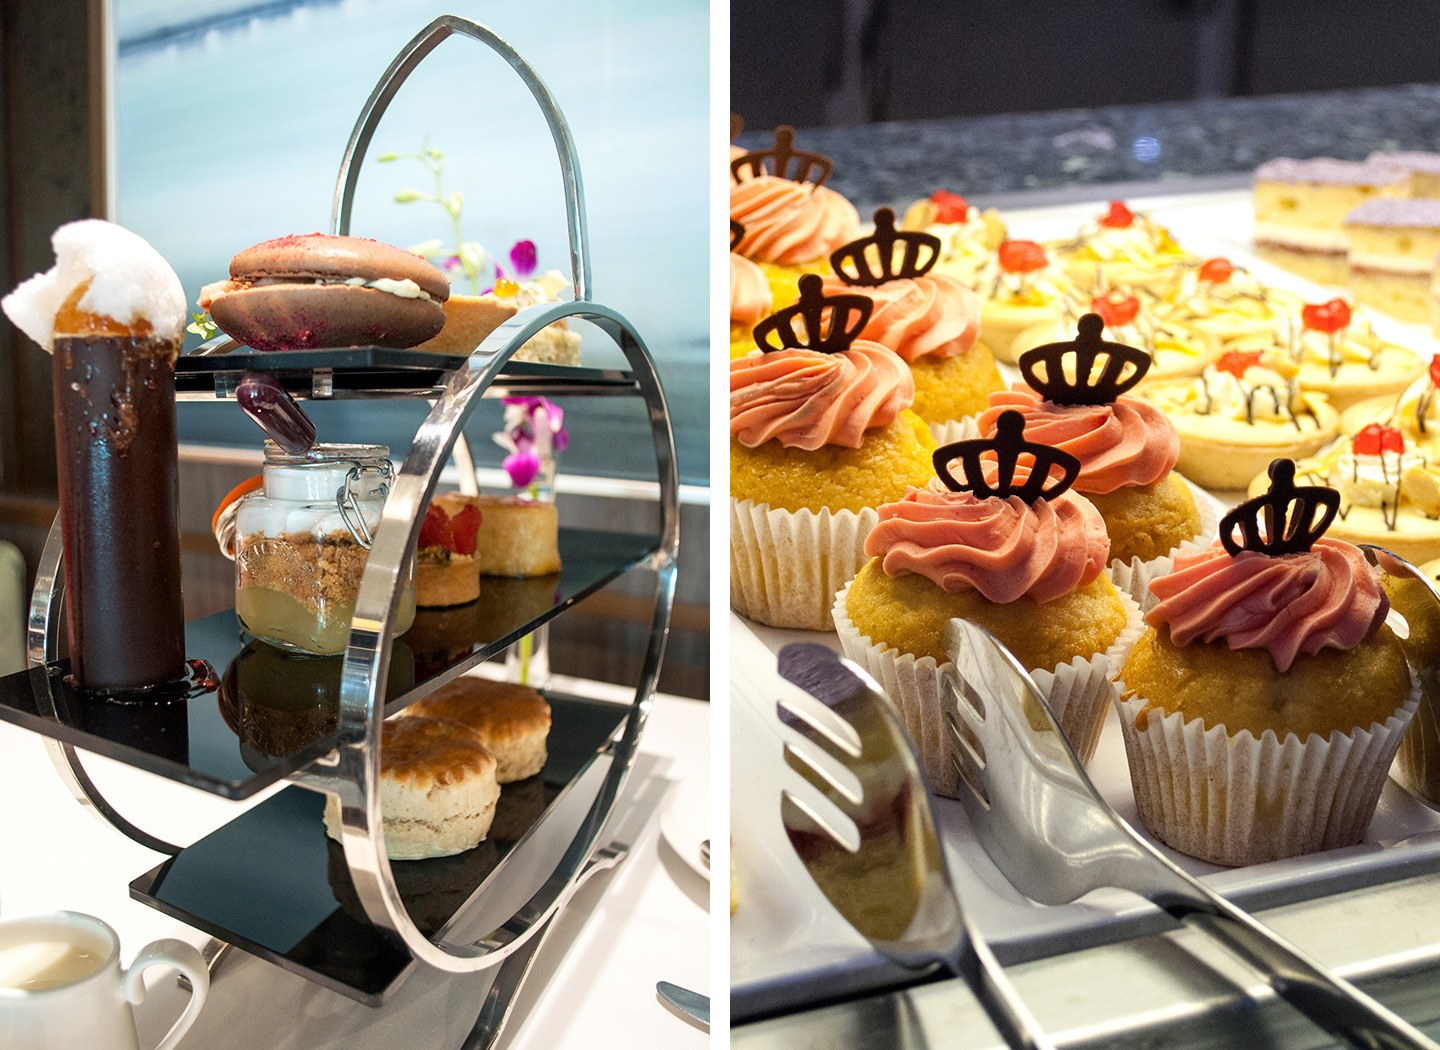 Afternoon tea in the Epicurian and the buffet on board P&O Cruises Britannia